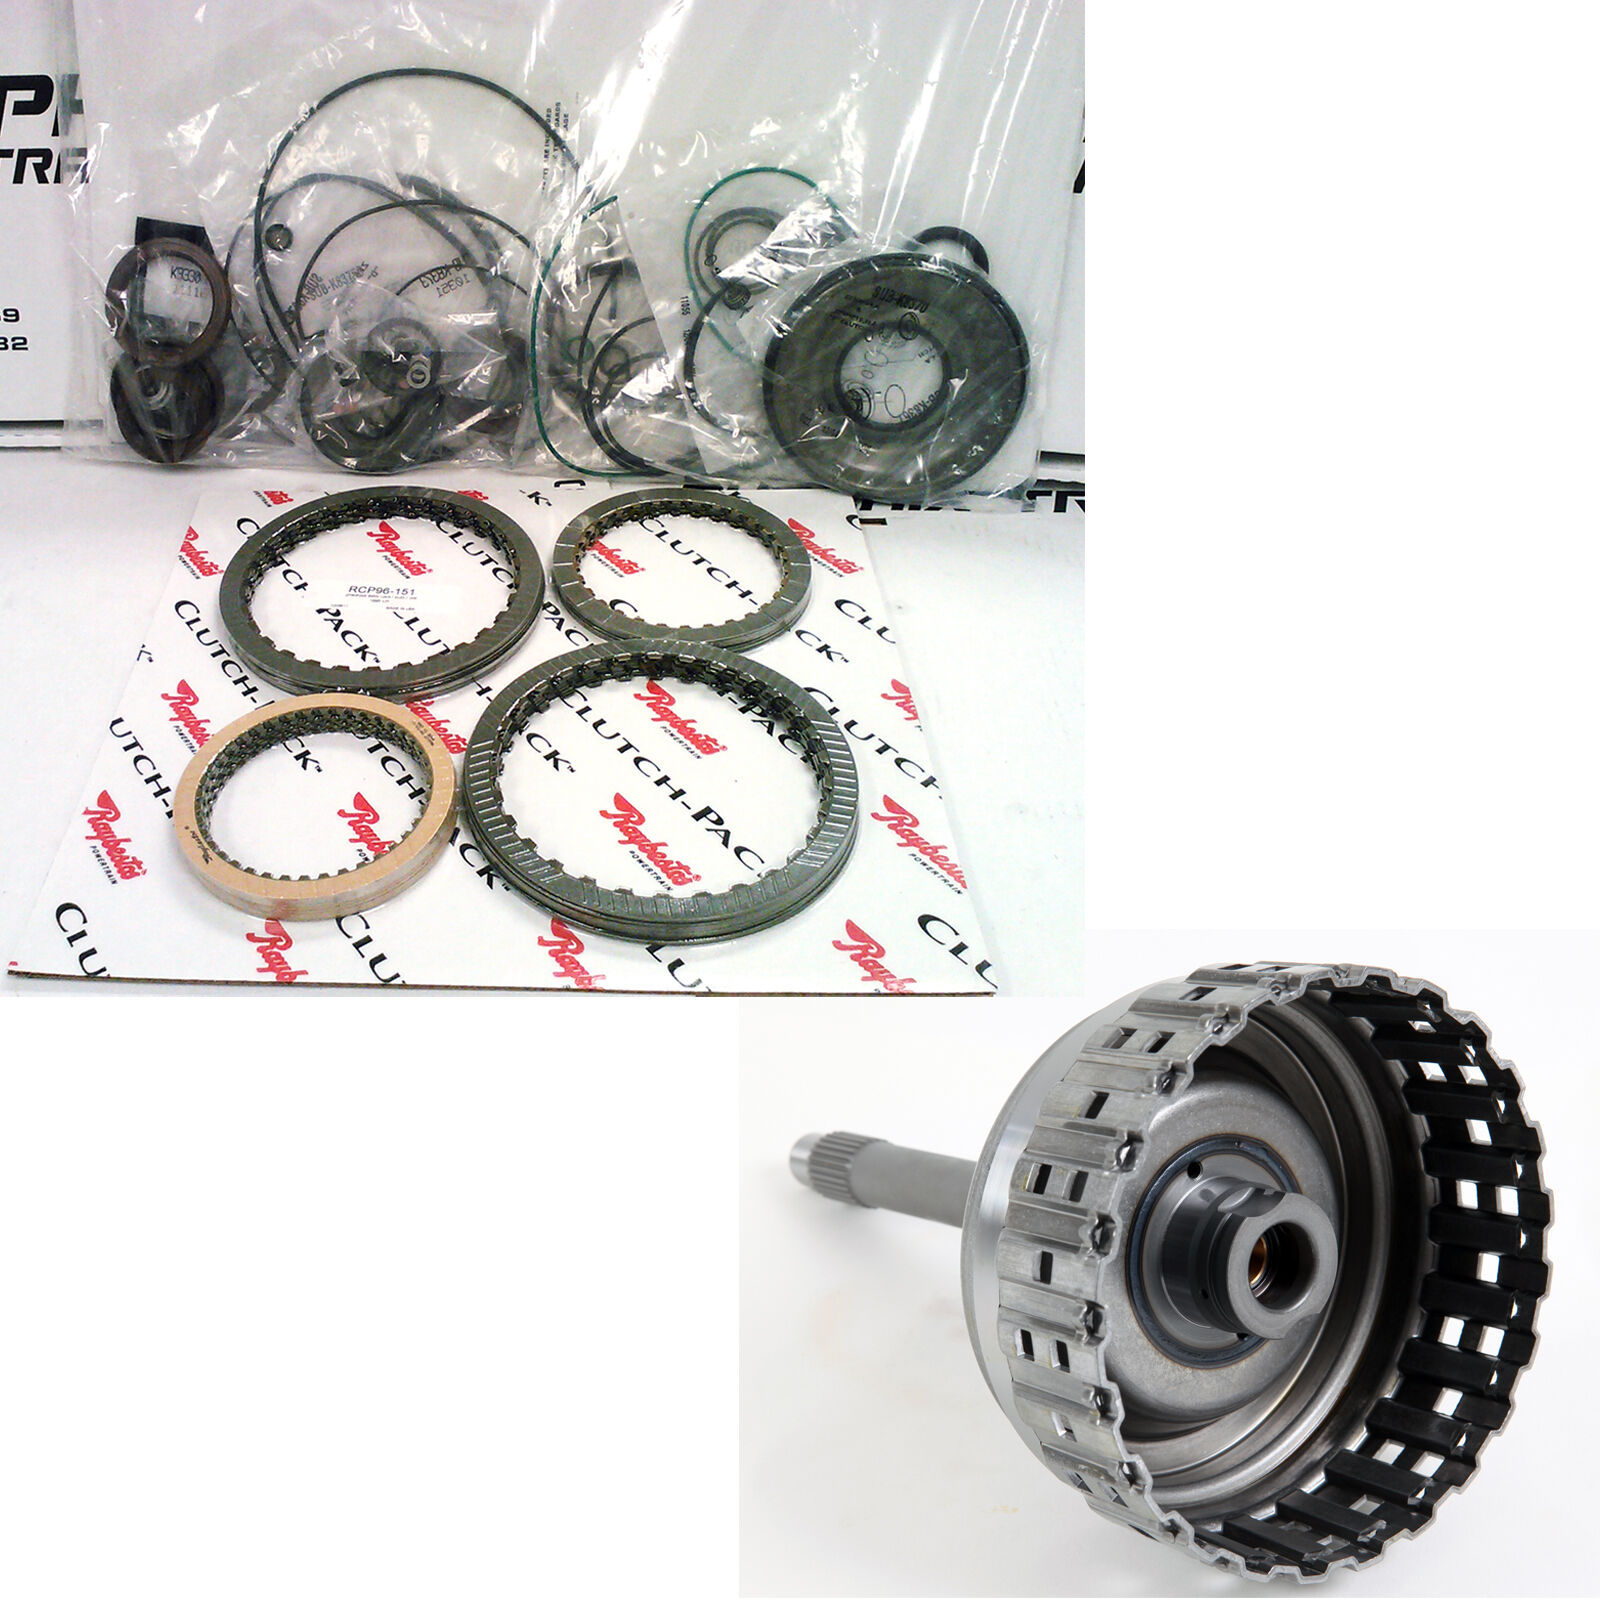 ZF5HP24 TRANSMISSION REBUILD KIT + CLUTCH PACK WITH A